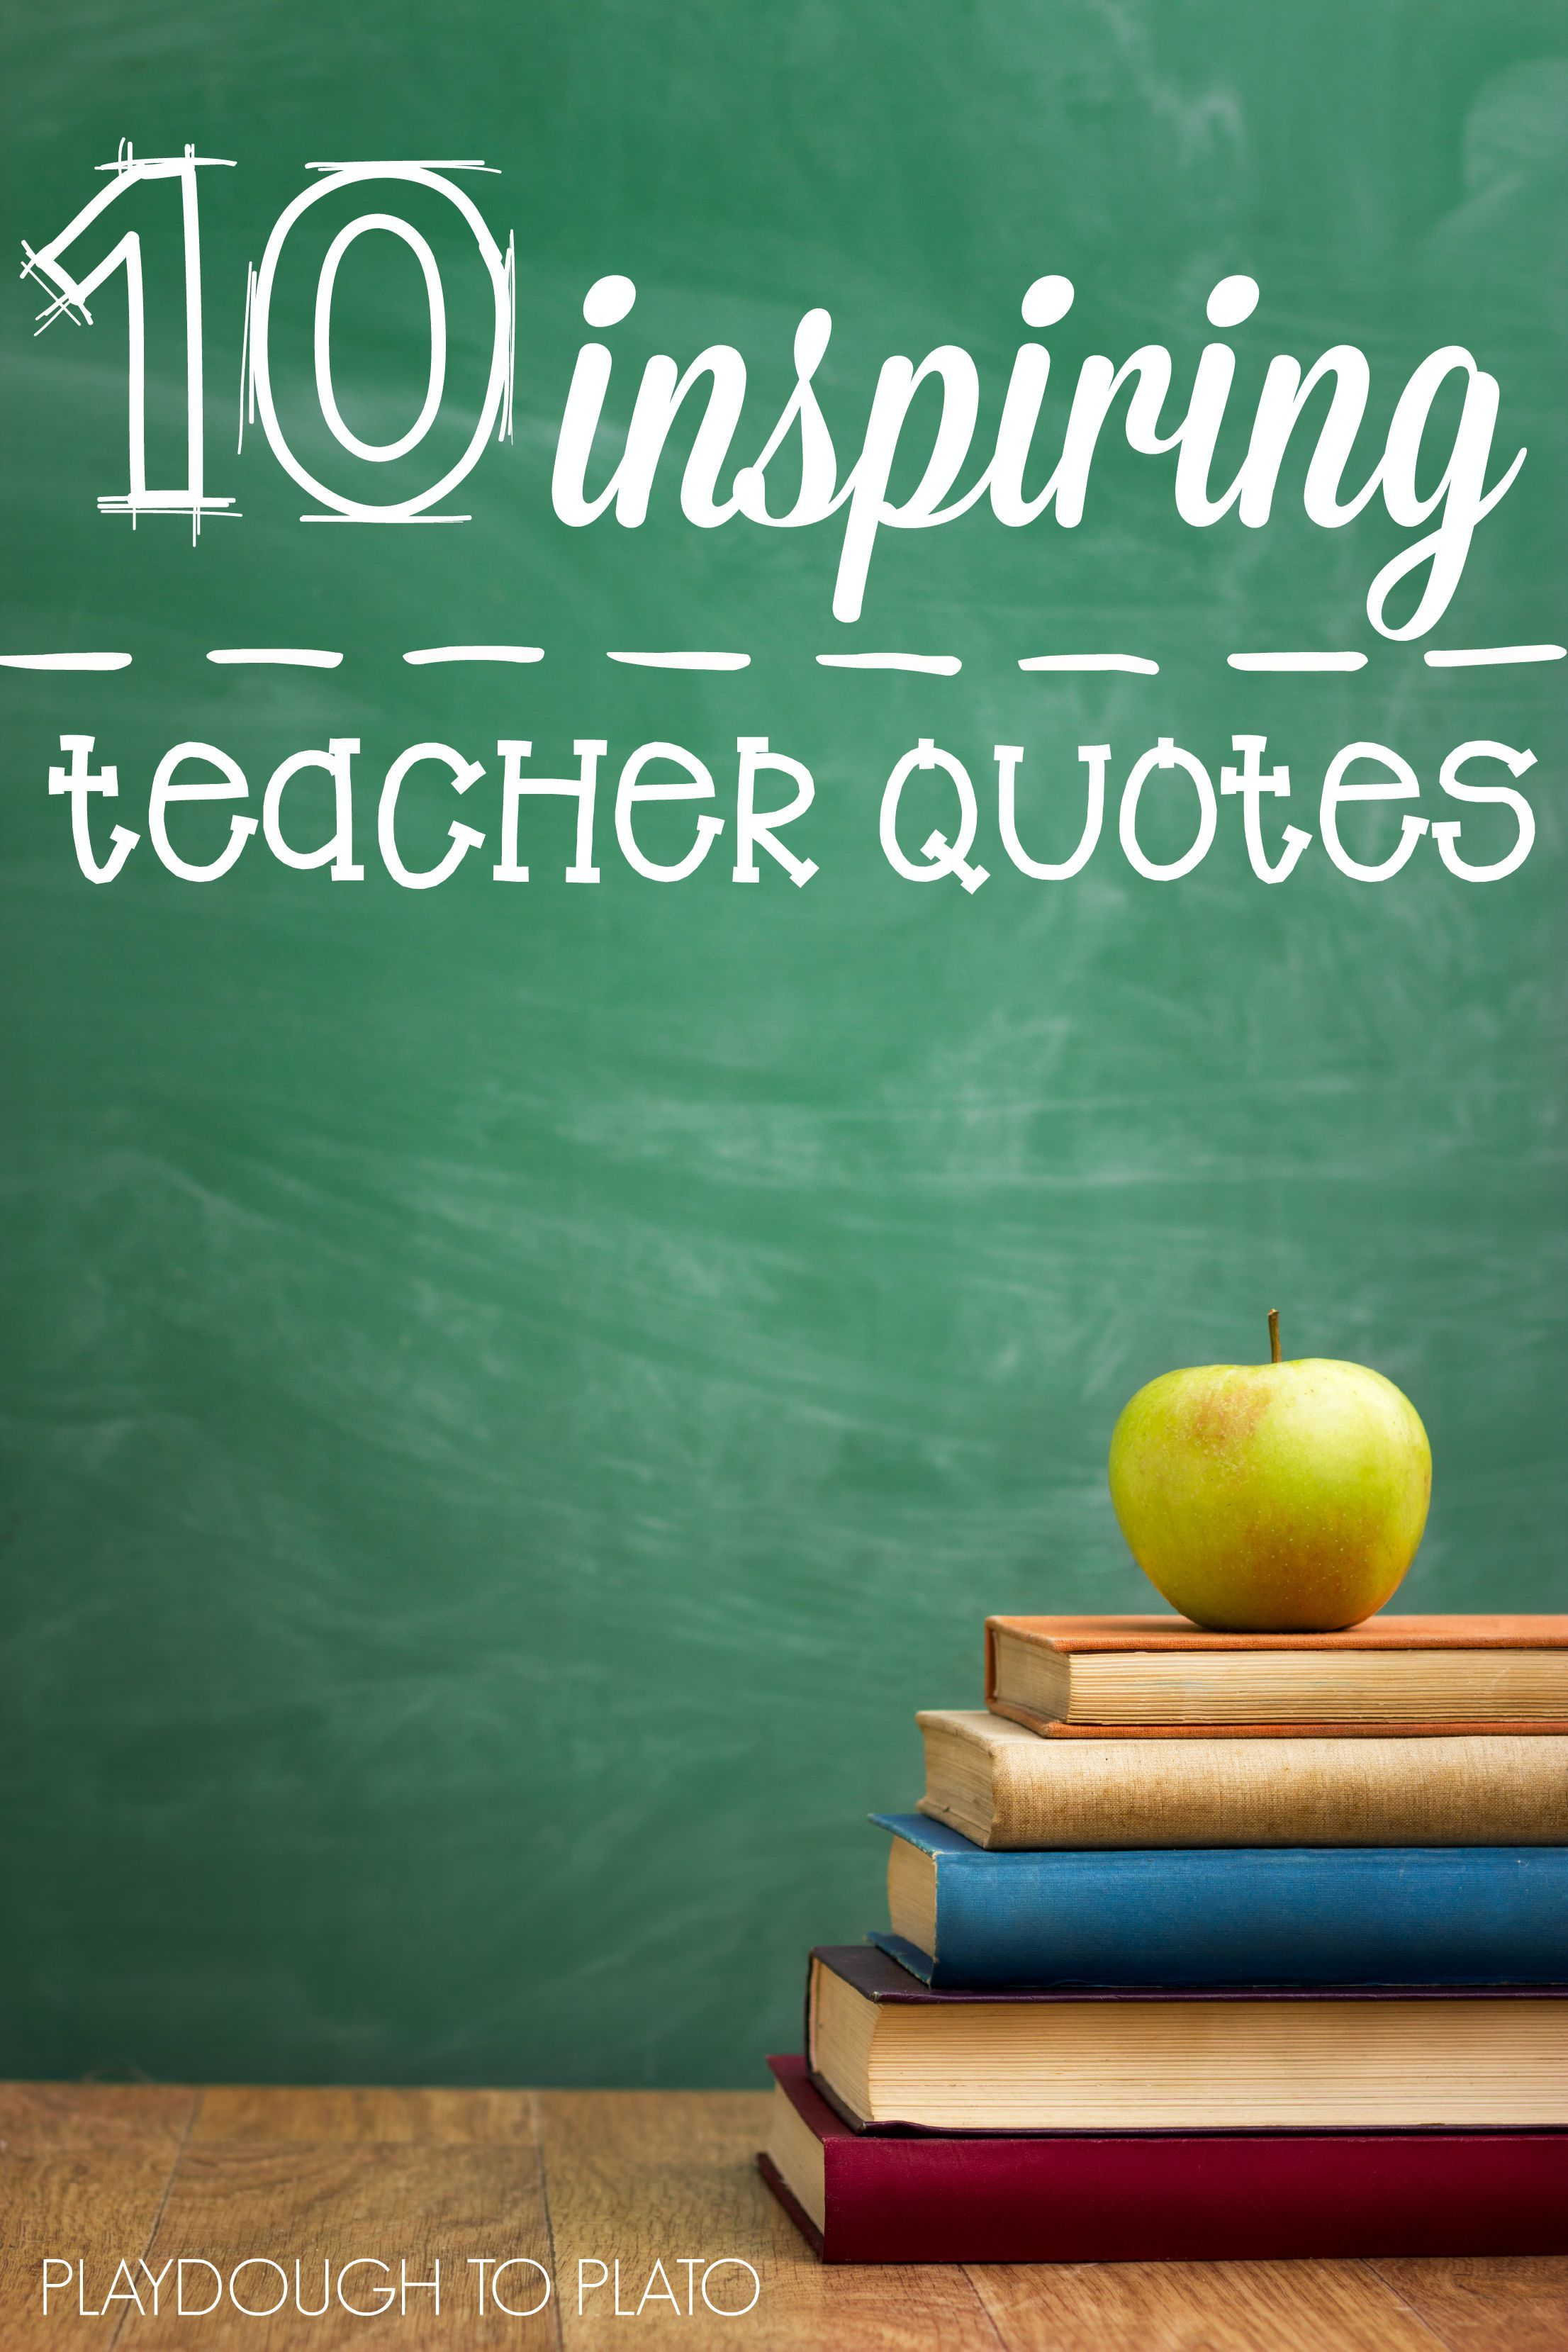 Educational Inspirational Quotes 10 Inspiring Teacher Quotes  Teacher And School